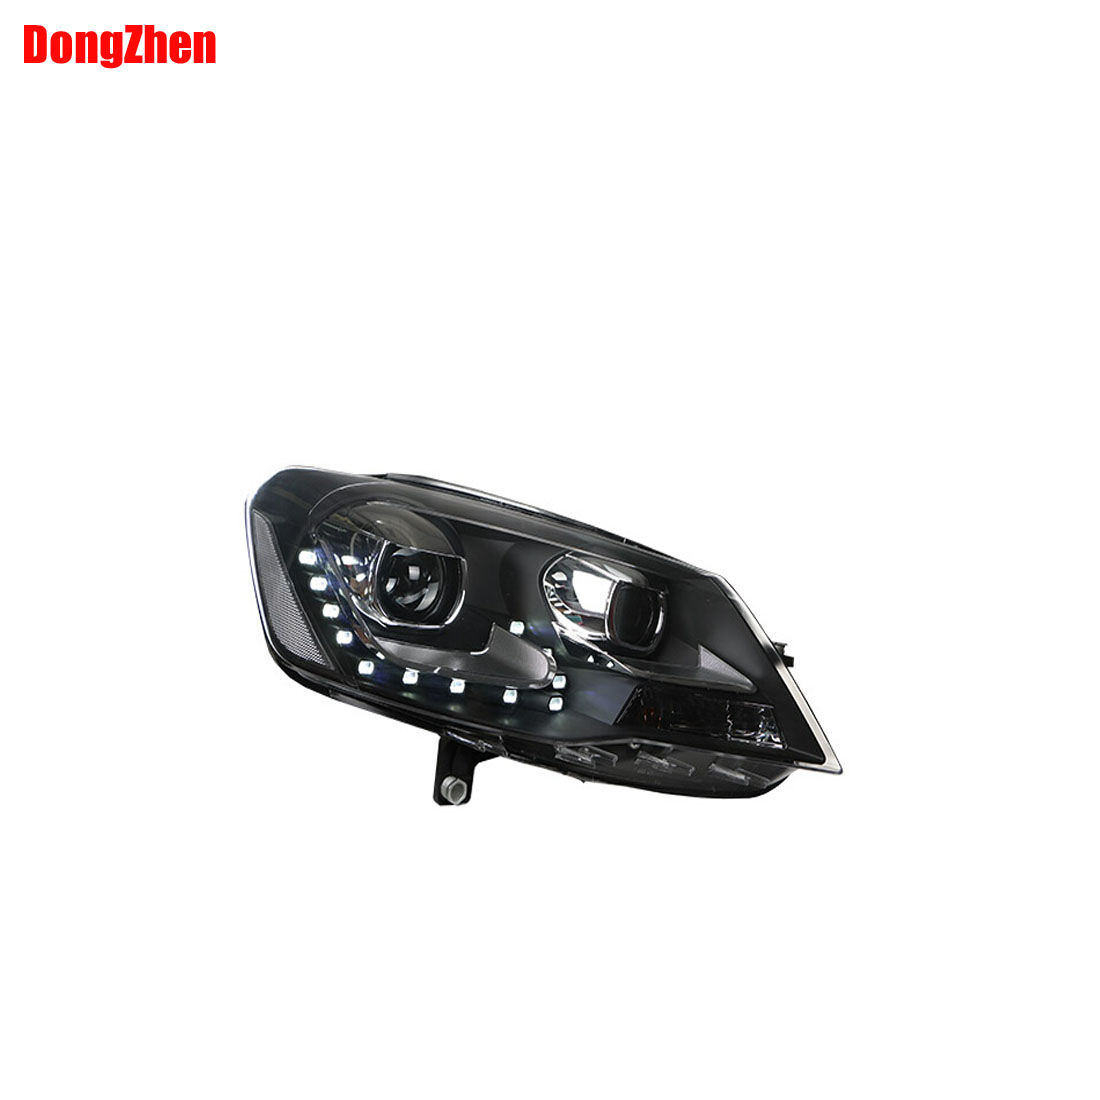 Dong Zhen Car Parts for VW Bora Headlights 2013-2015  with LED bulbs line light with Projector lens h7 car styling new car styling auto h4 led bulb h7 lighting car led 12v lights h4 h7 led lamps light bulbs headlights for cars led headlights